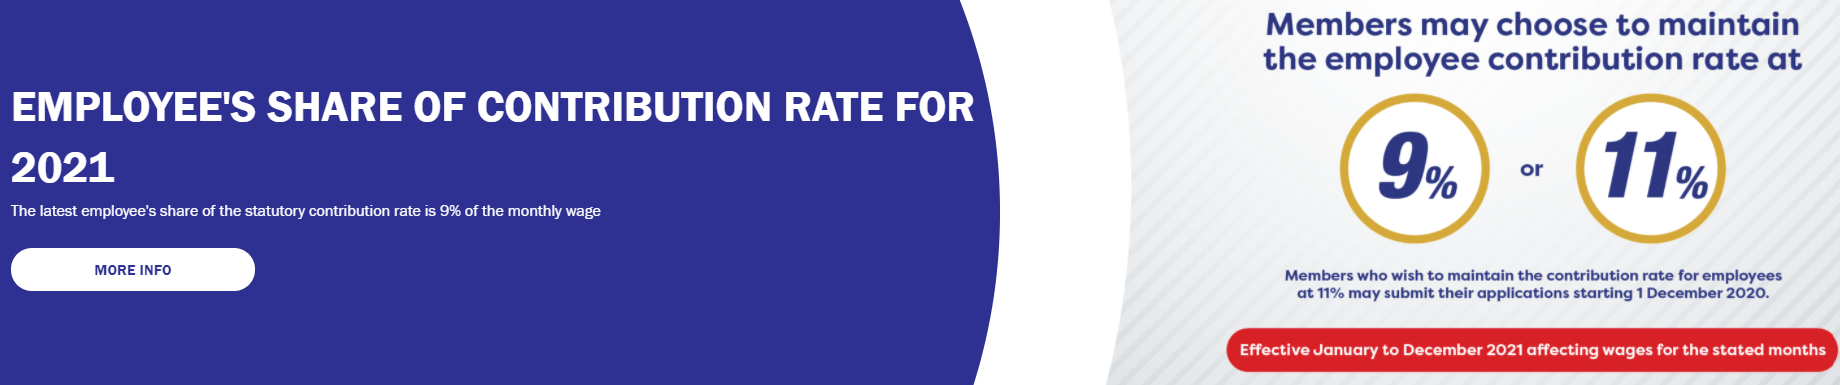 New statutory contribution rate of 2021 - 9% or 11%